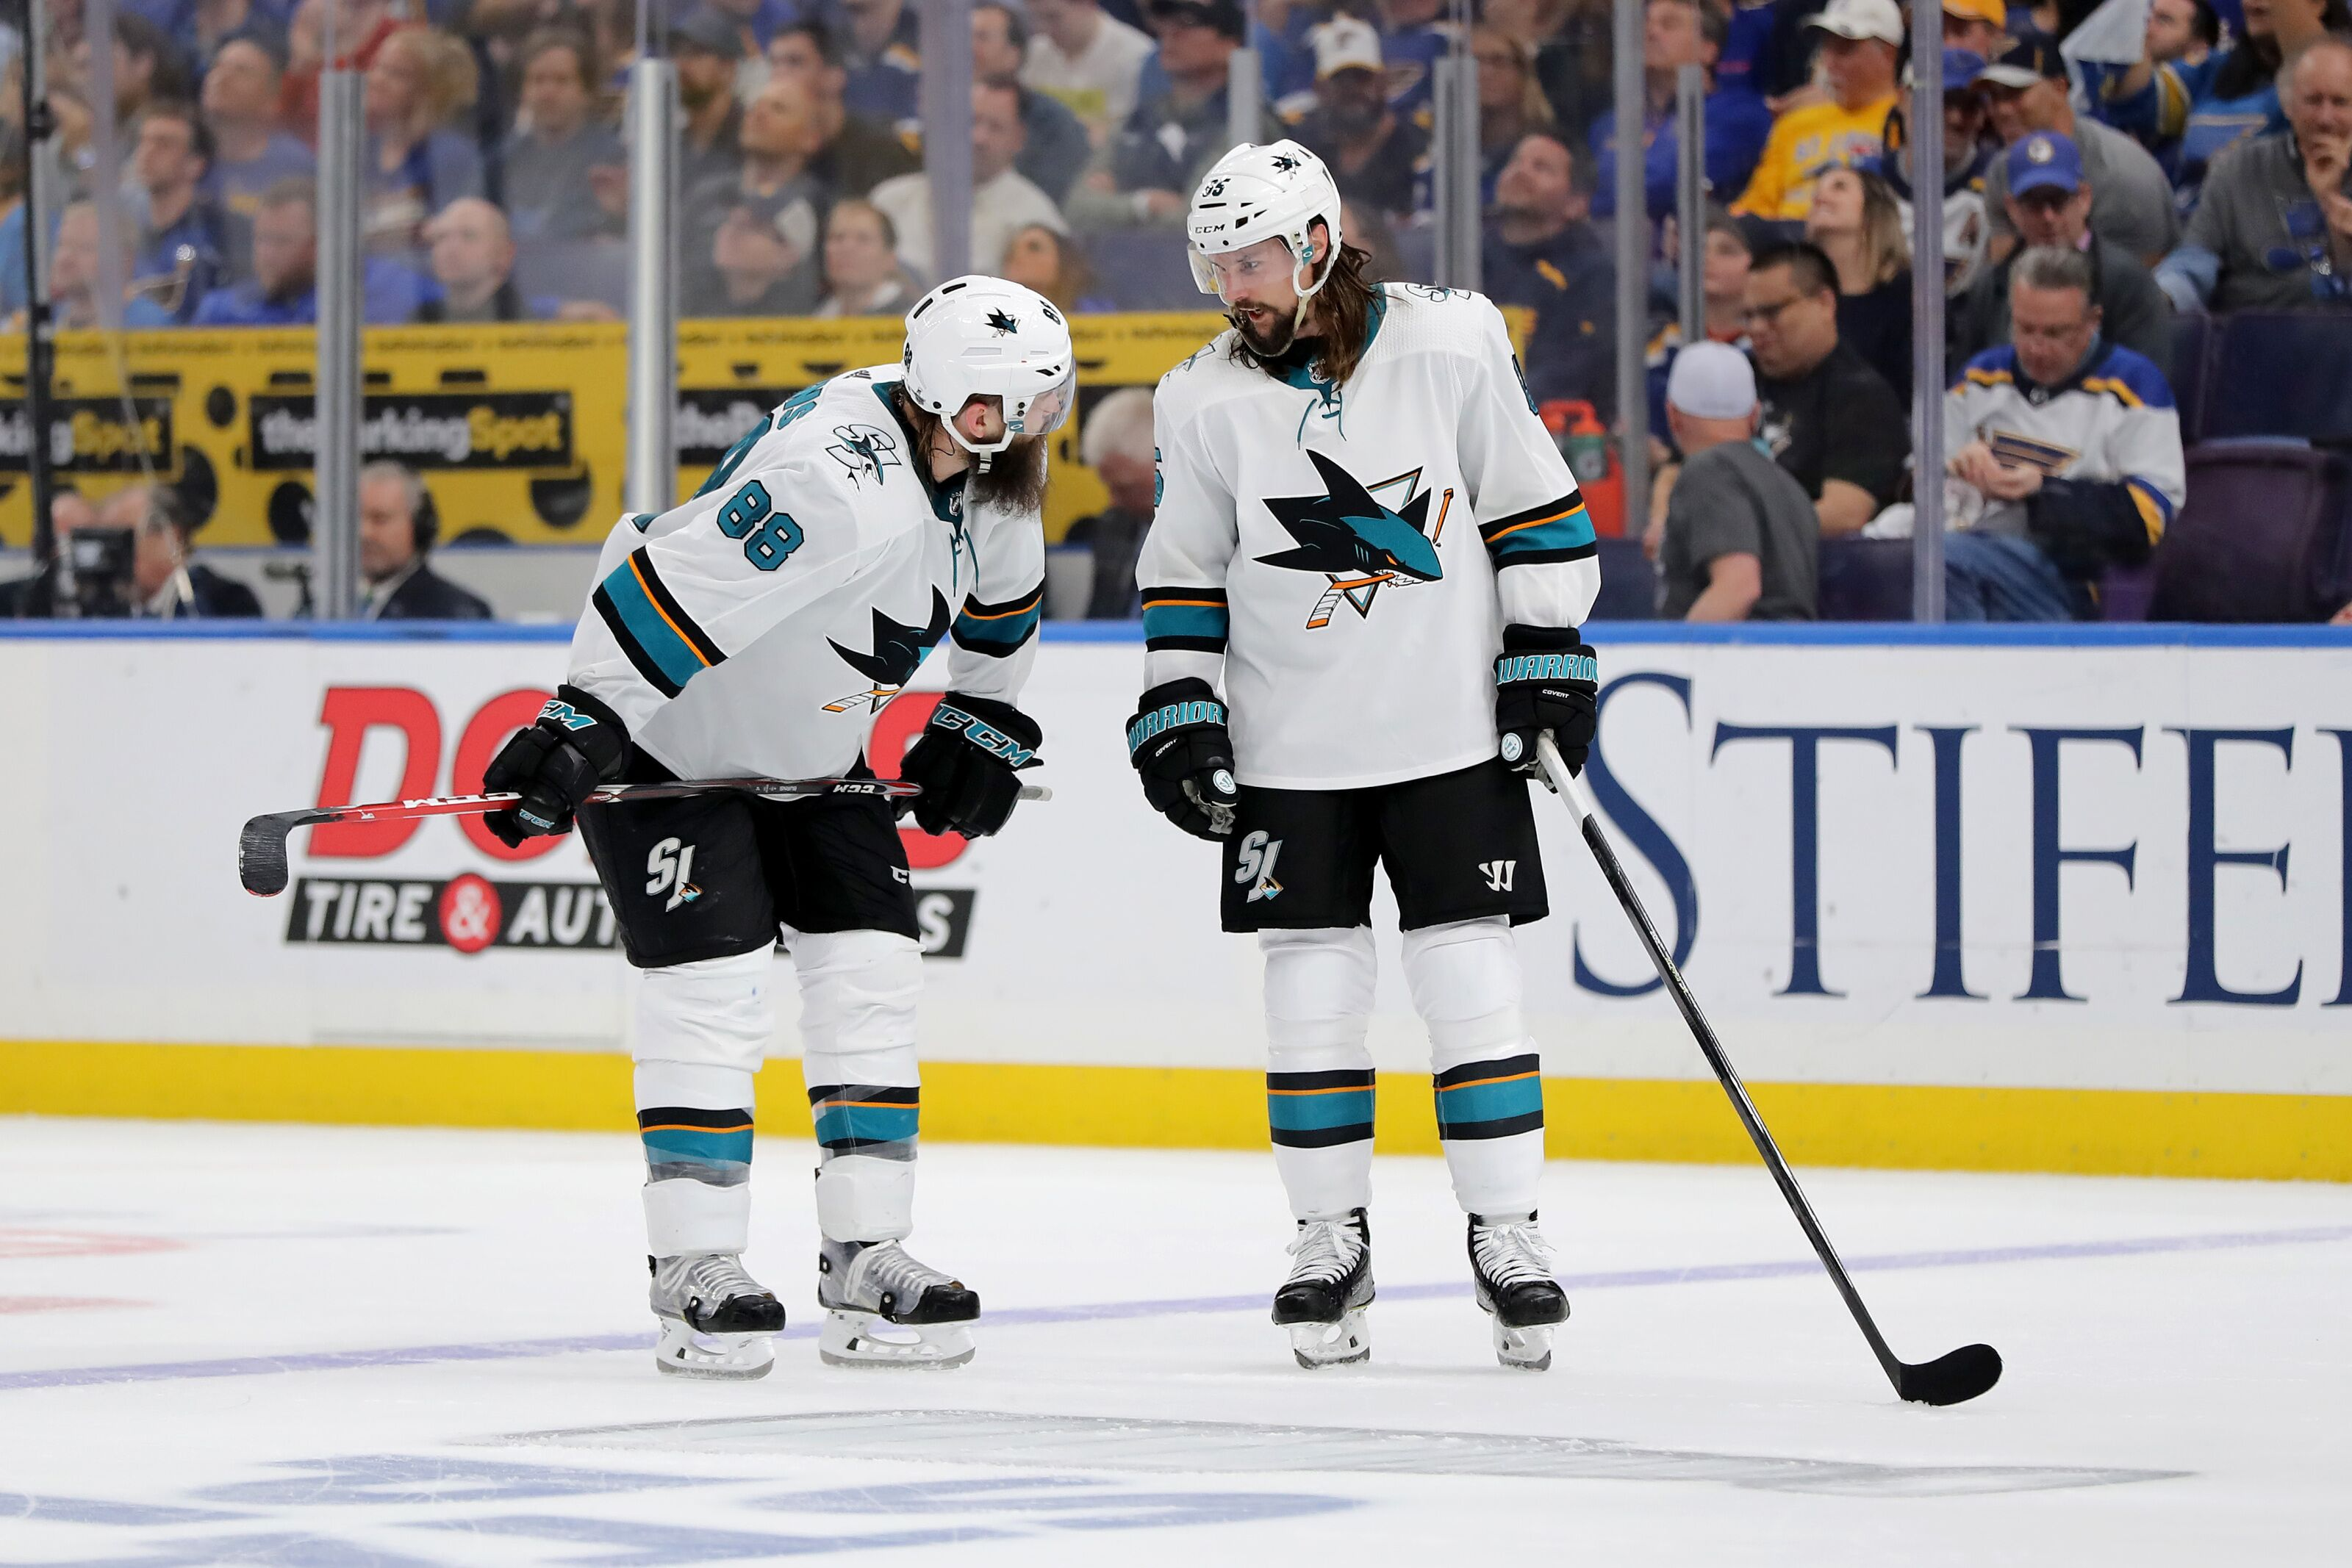 San Jose Sharks Finish with 2 Skaters in the NHL 20 Top 50